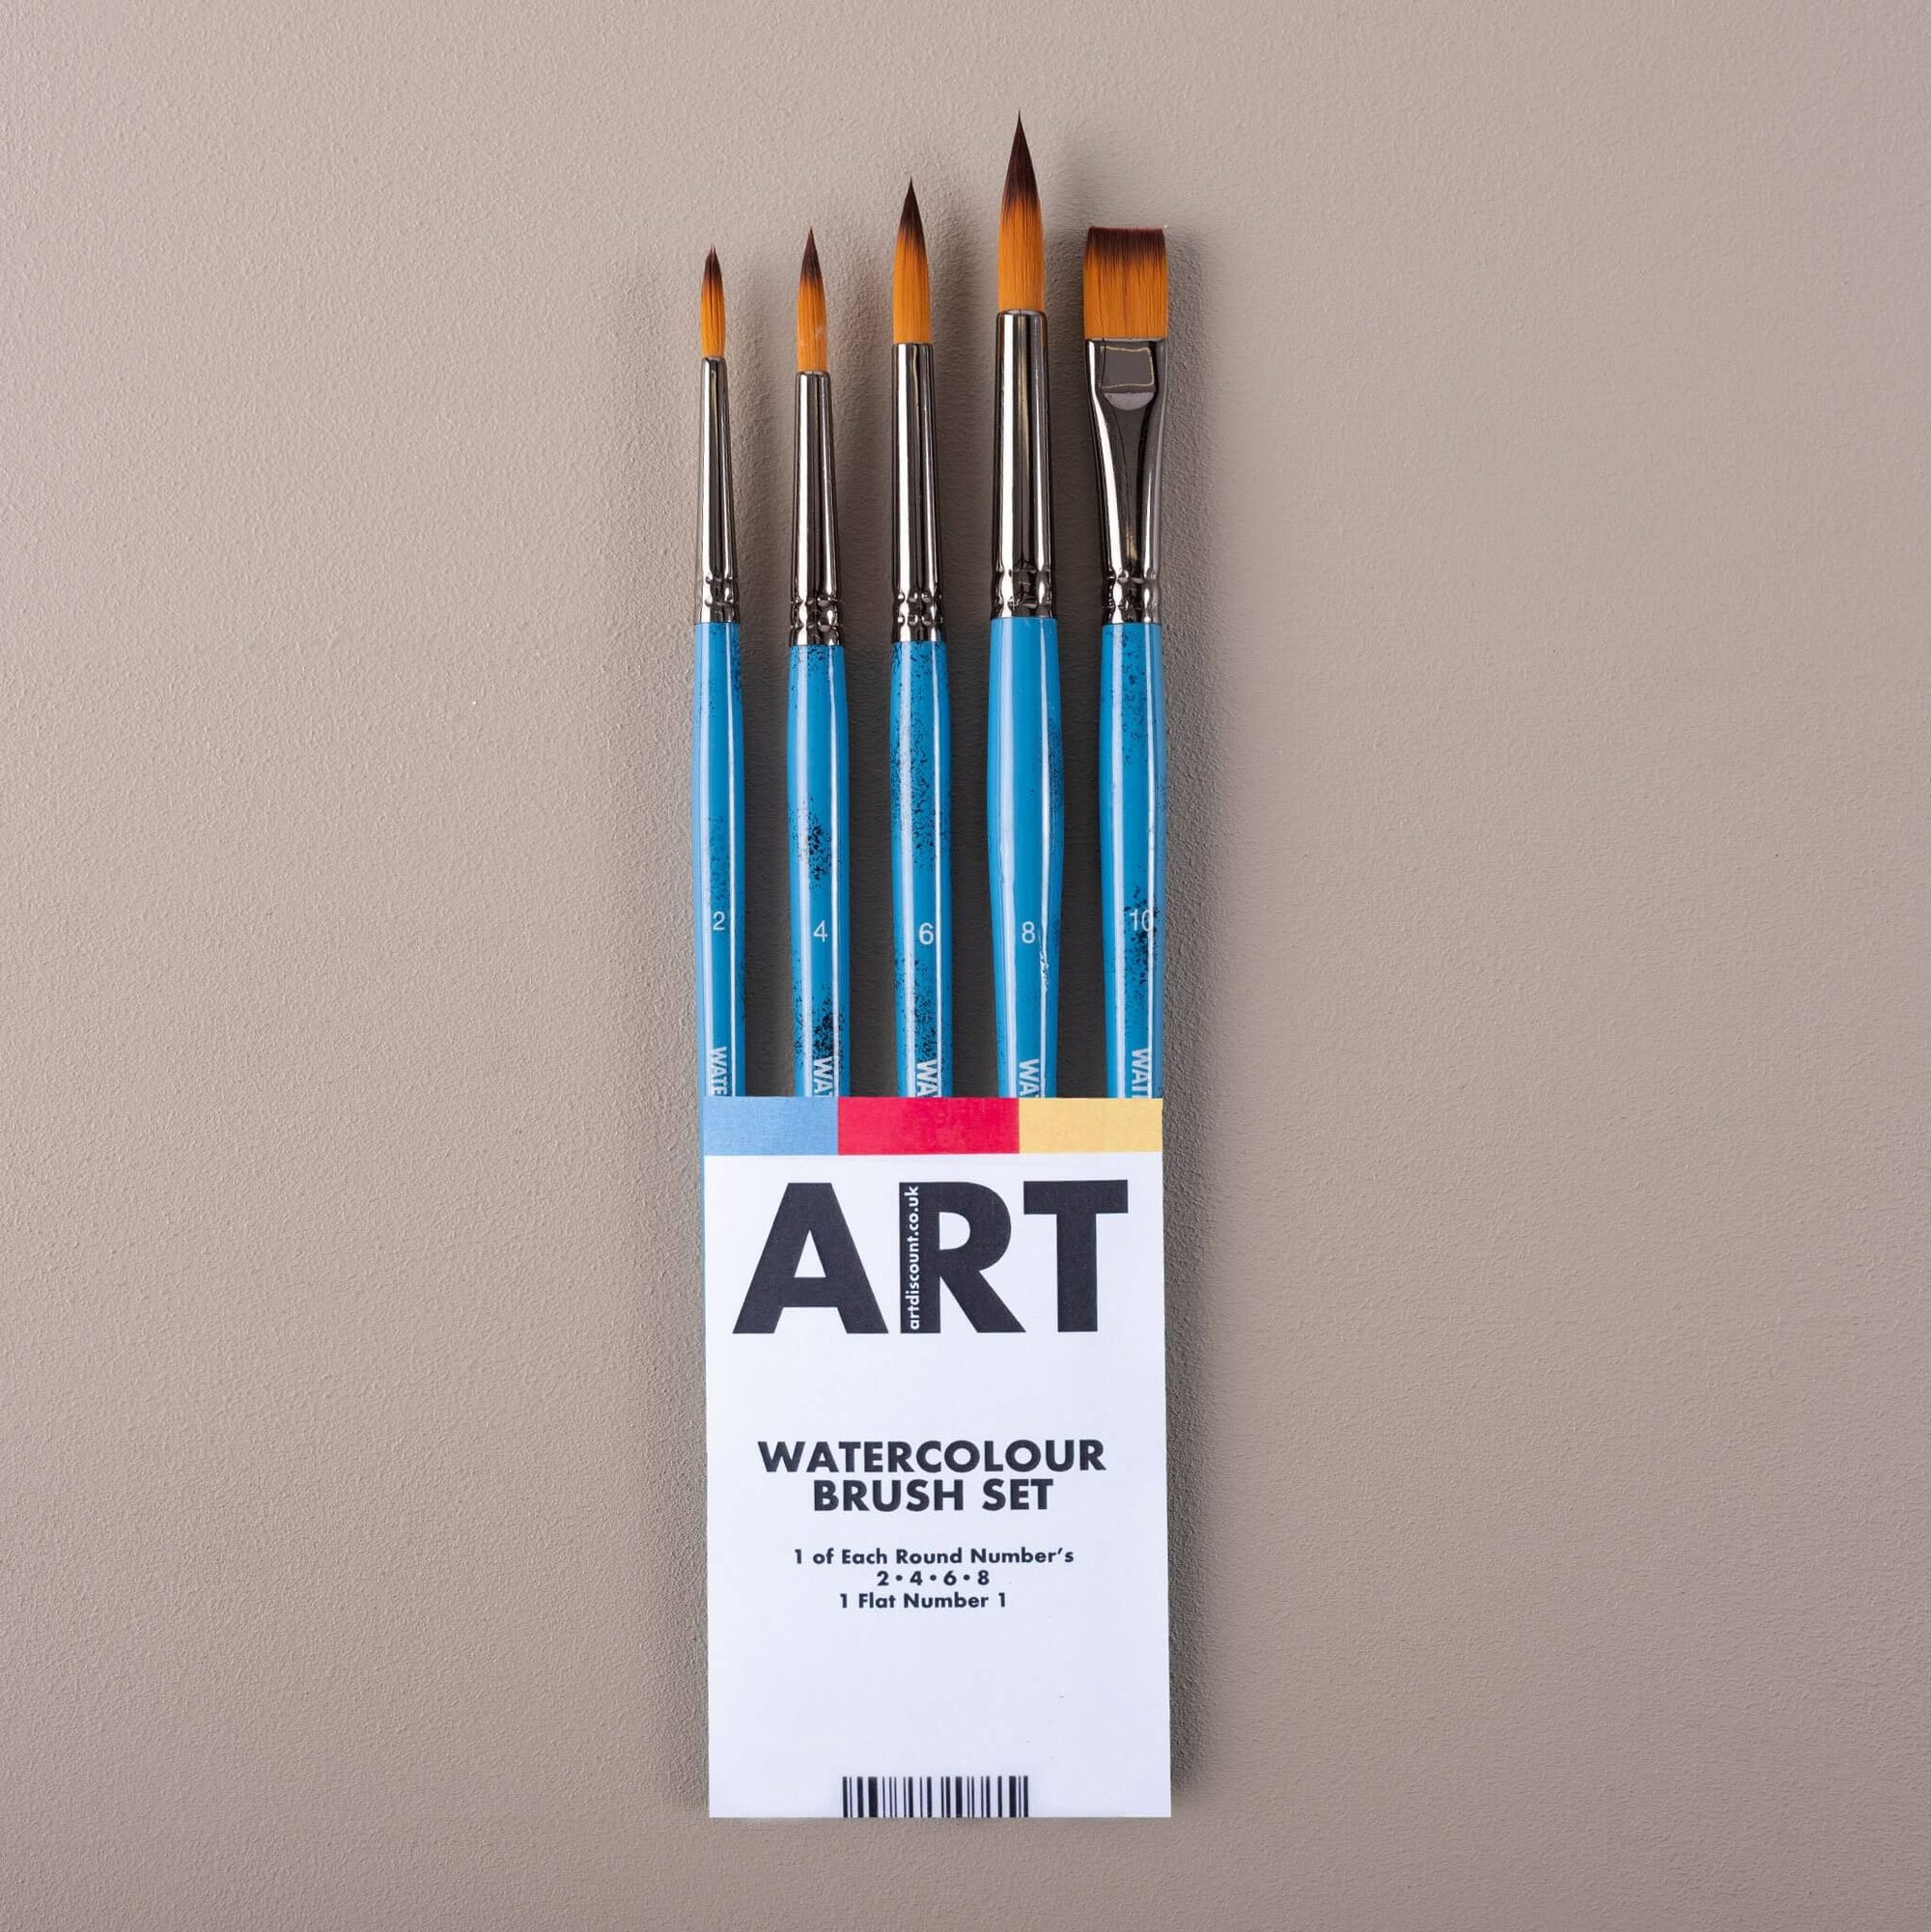 ARTdiscount SAMPLE Watercolour Brush Set of 5 Brushes